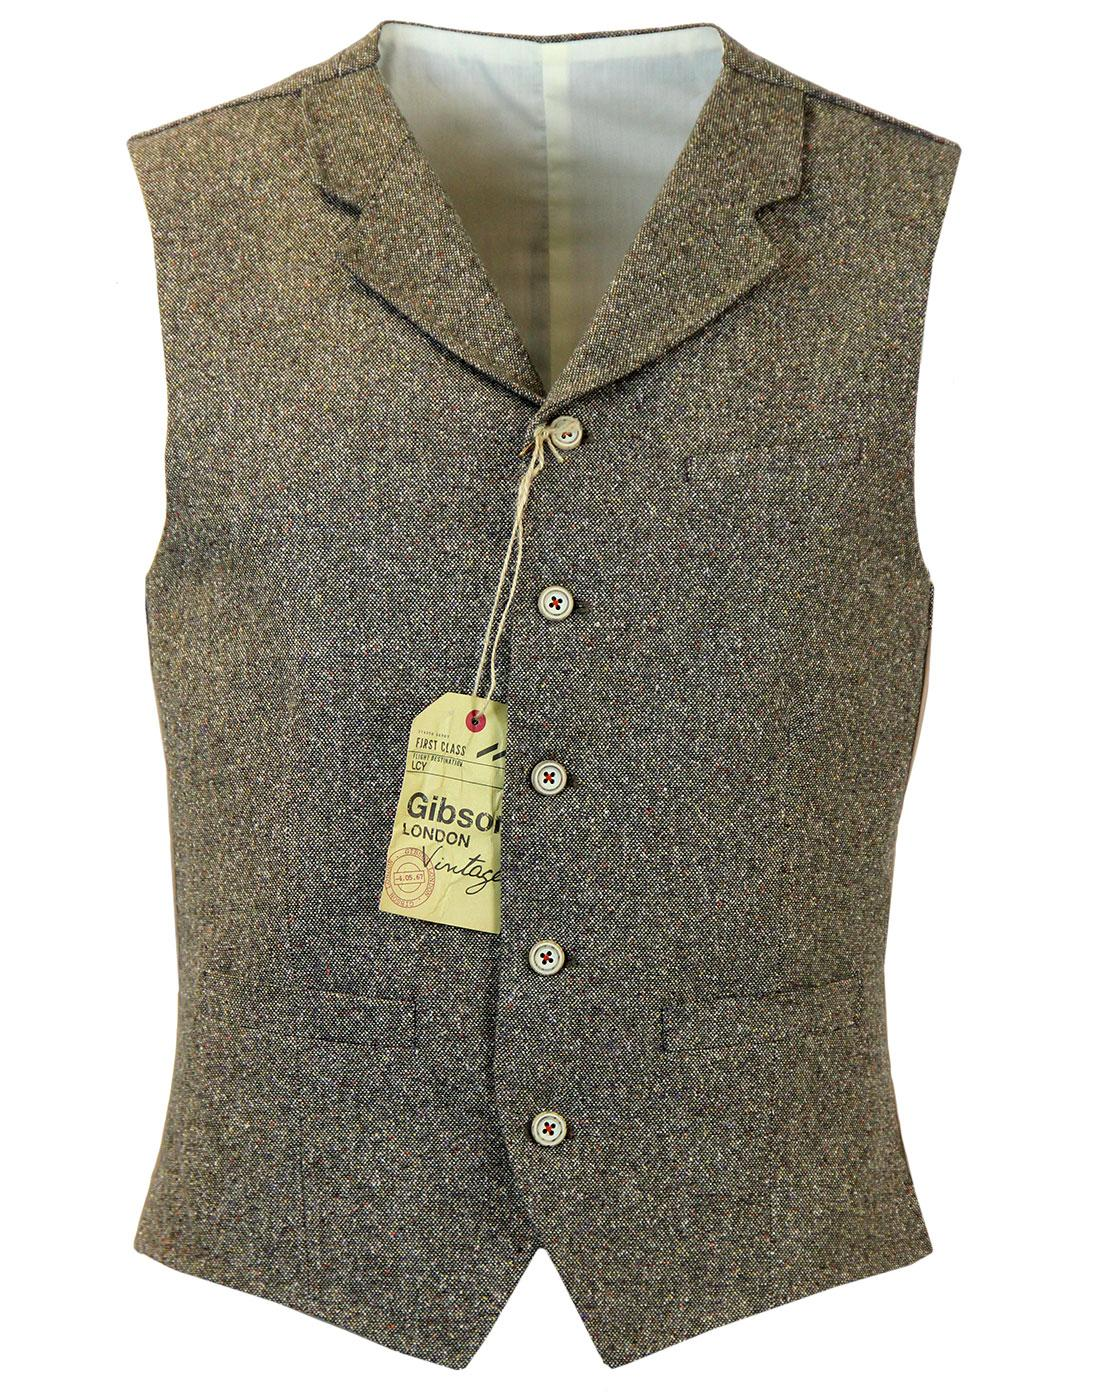 GIBSON LONDON High Fasten Donegal Waistcoat OLIVE